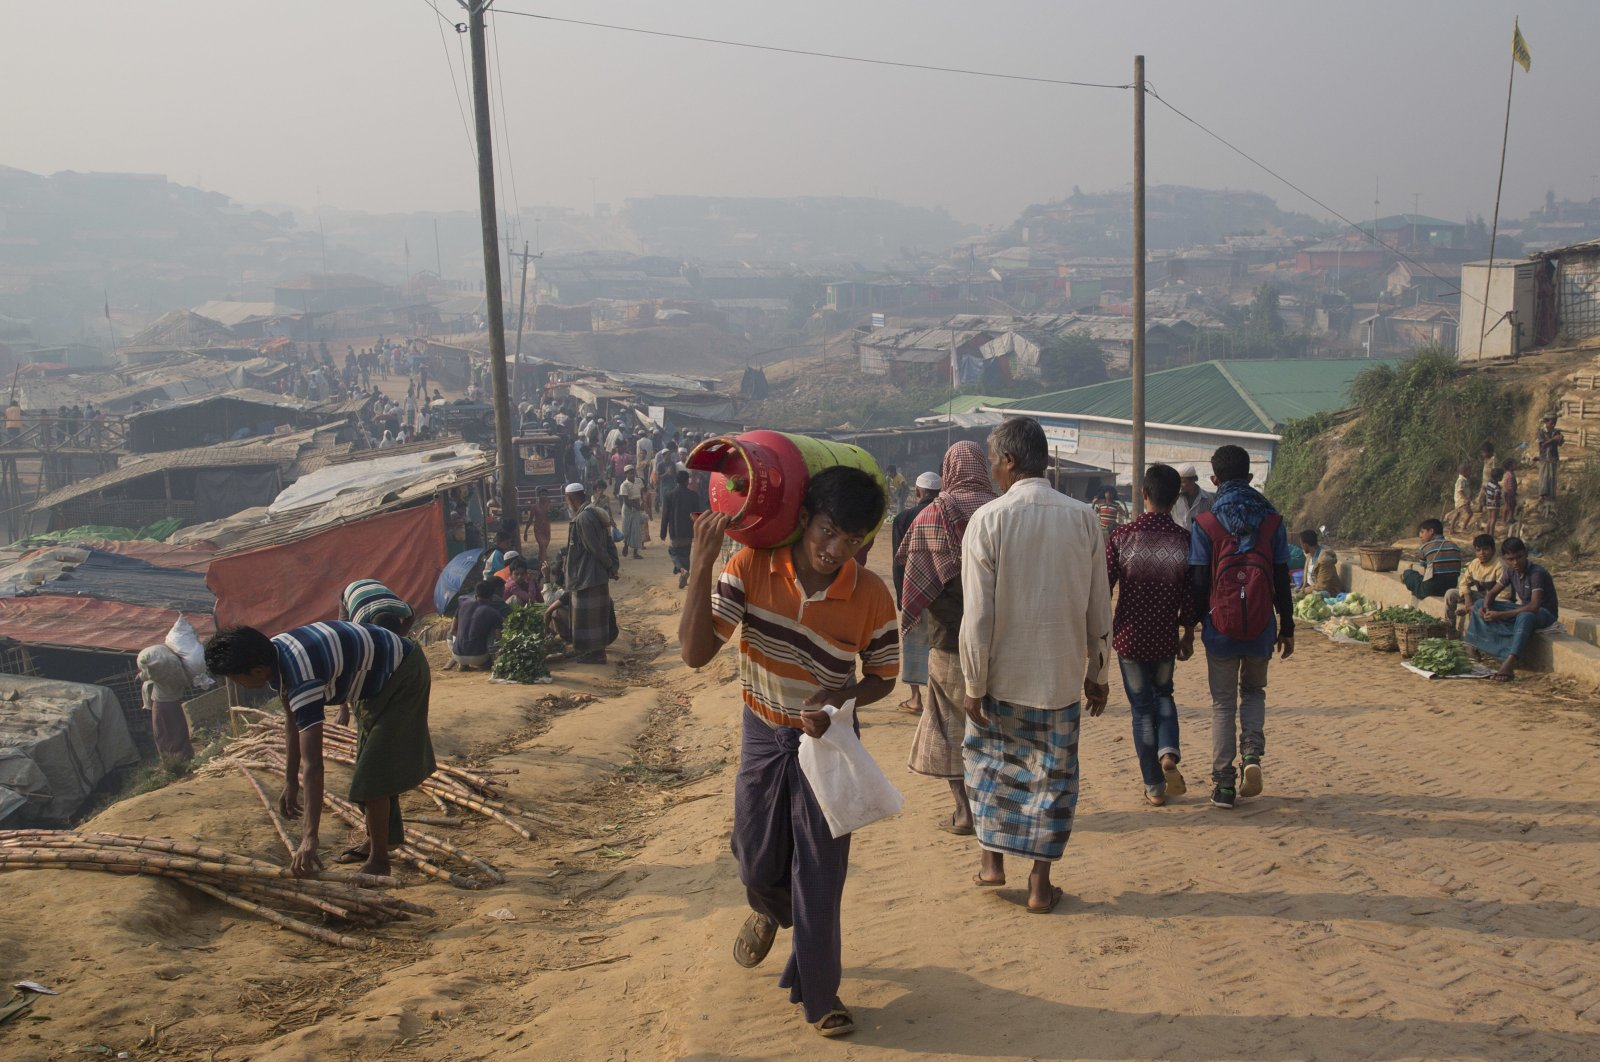 A Rohingya refugee carrying a cooking gas cylinder walks up a hill in the Balukhali refugee camp near Cox's Bazar, Bangladesh, Nov. 17, 2018. (AP Photo)